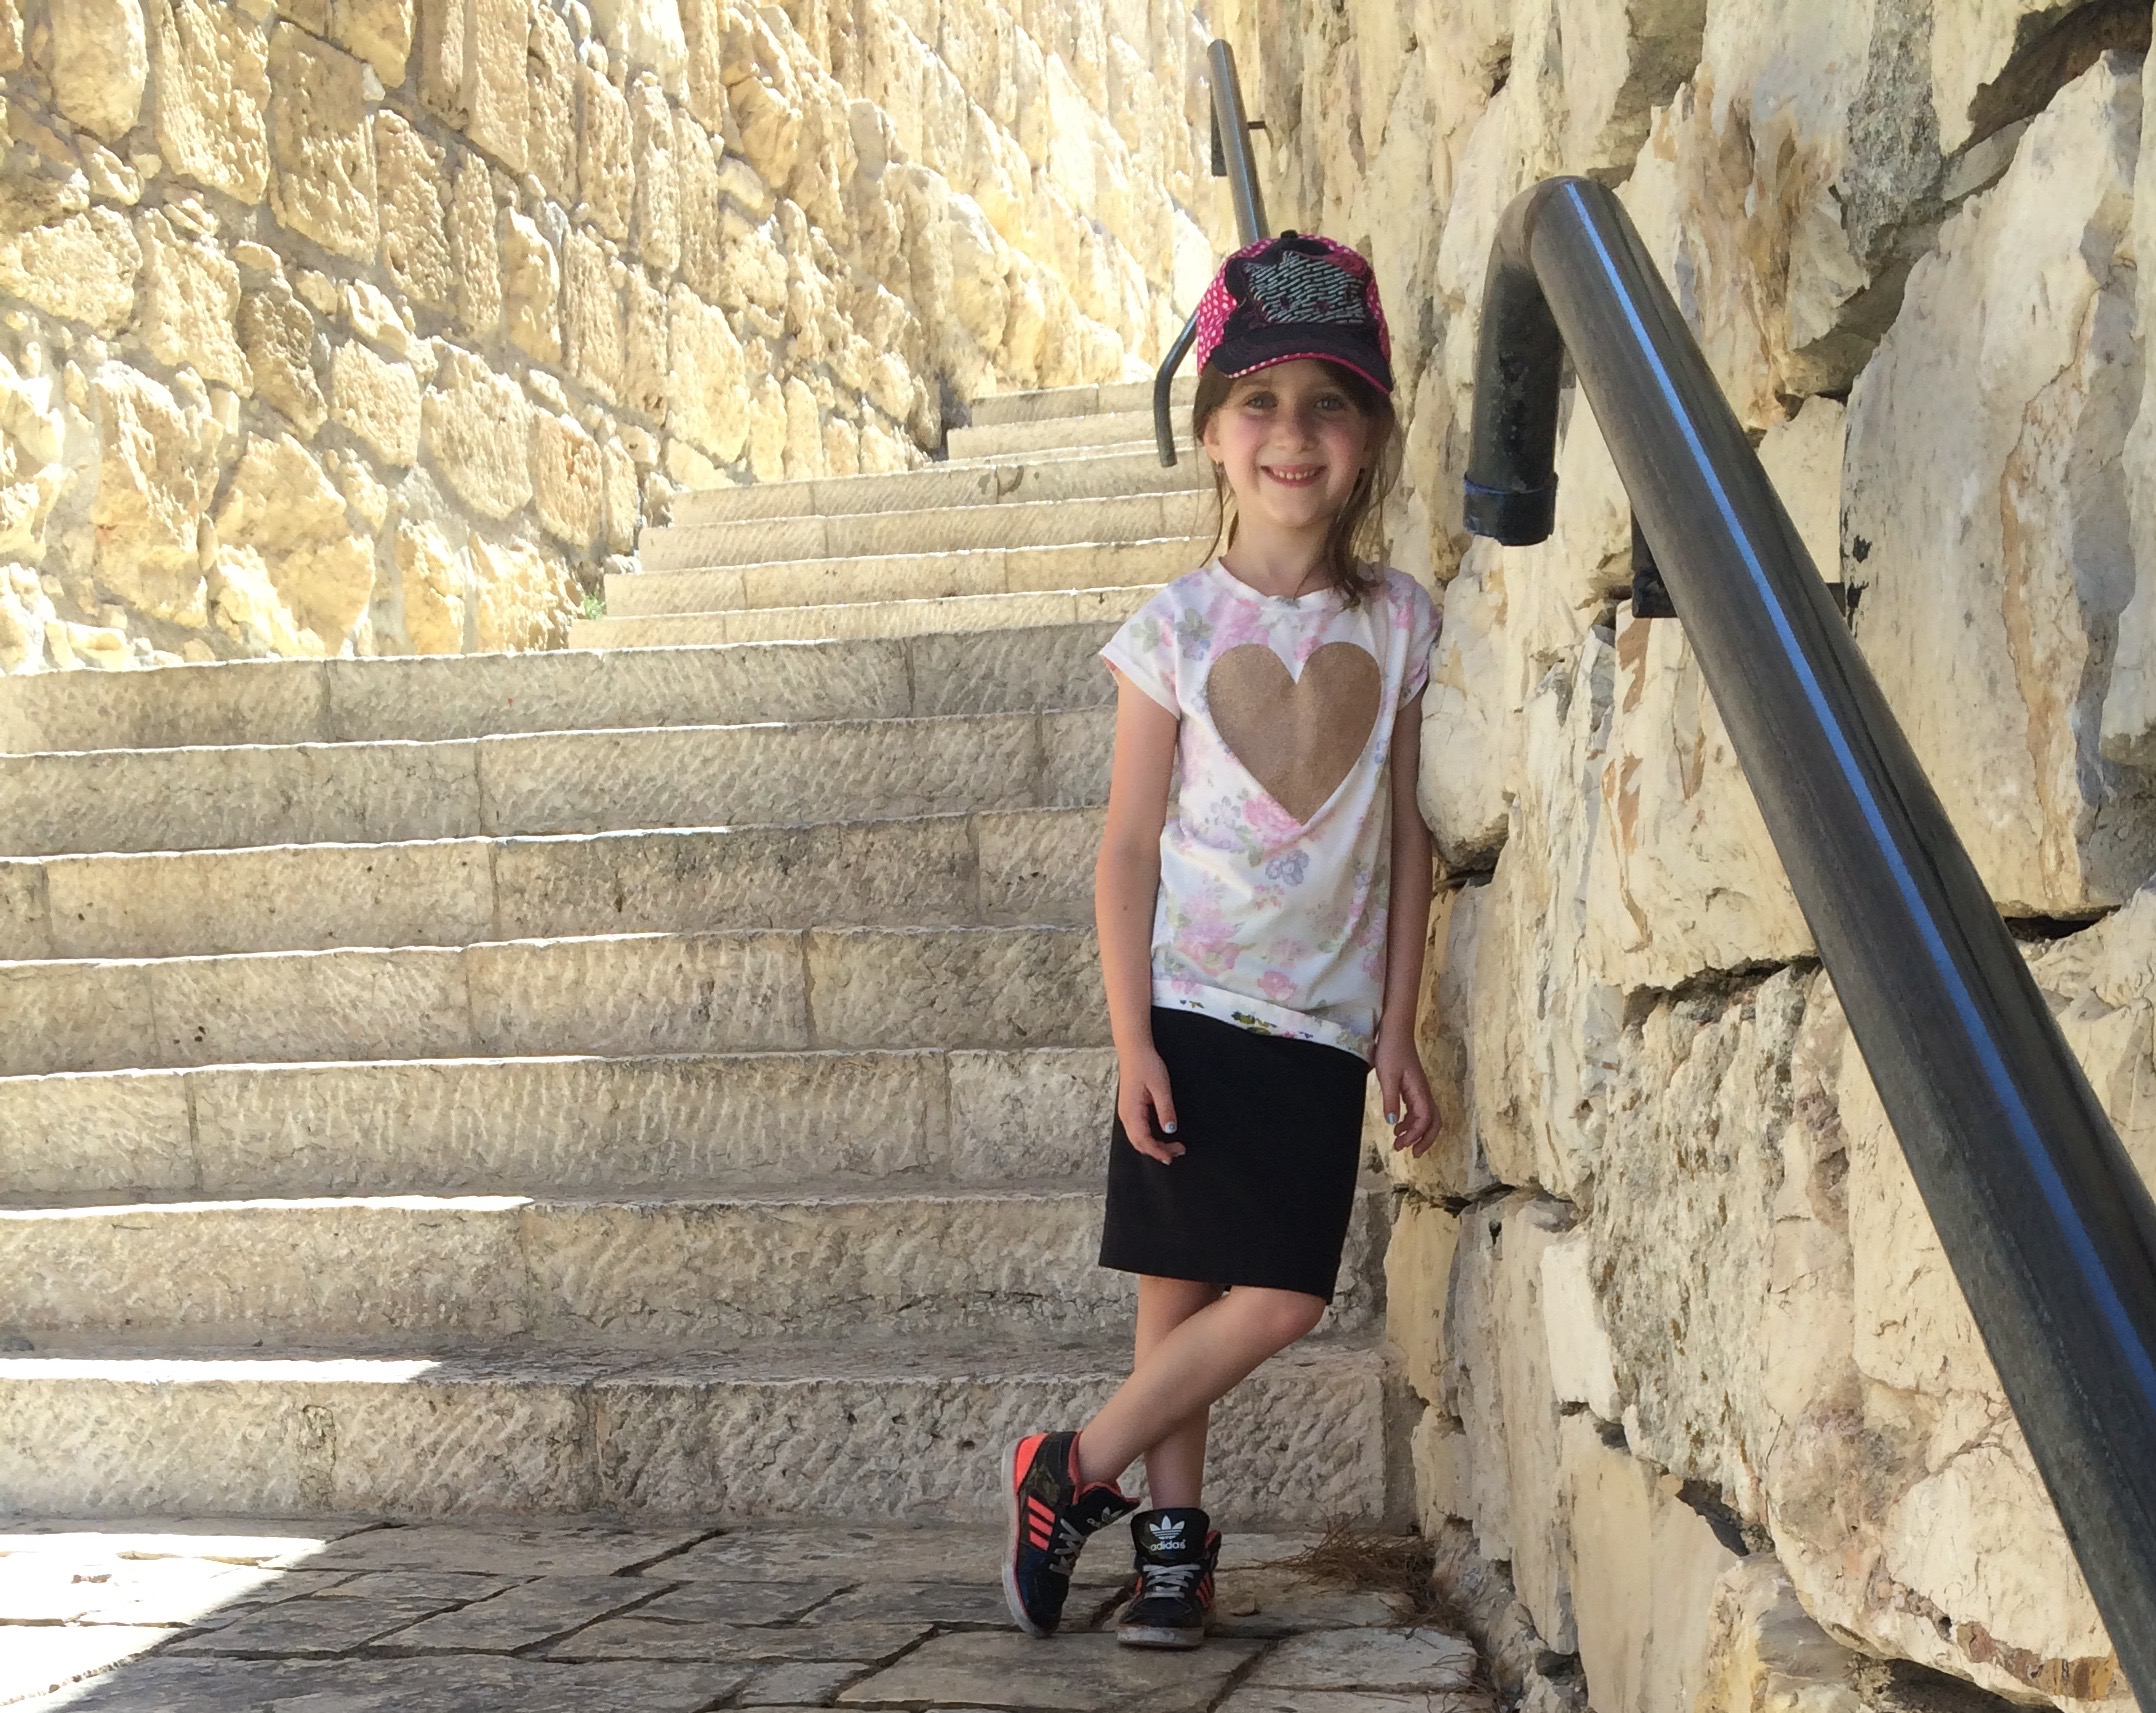 Maayan Ariel is having a wonderful time exploring the Old City.